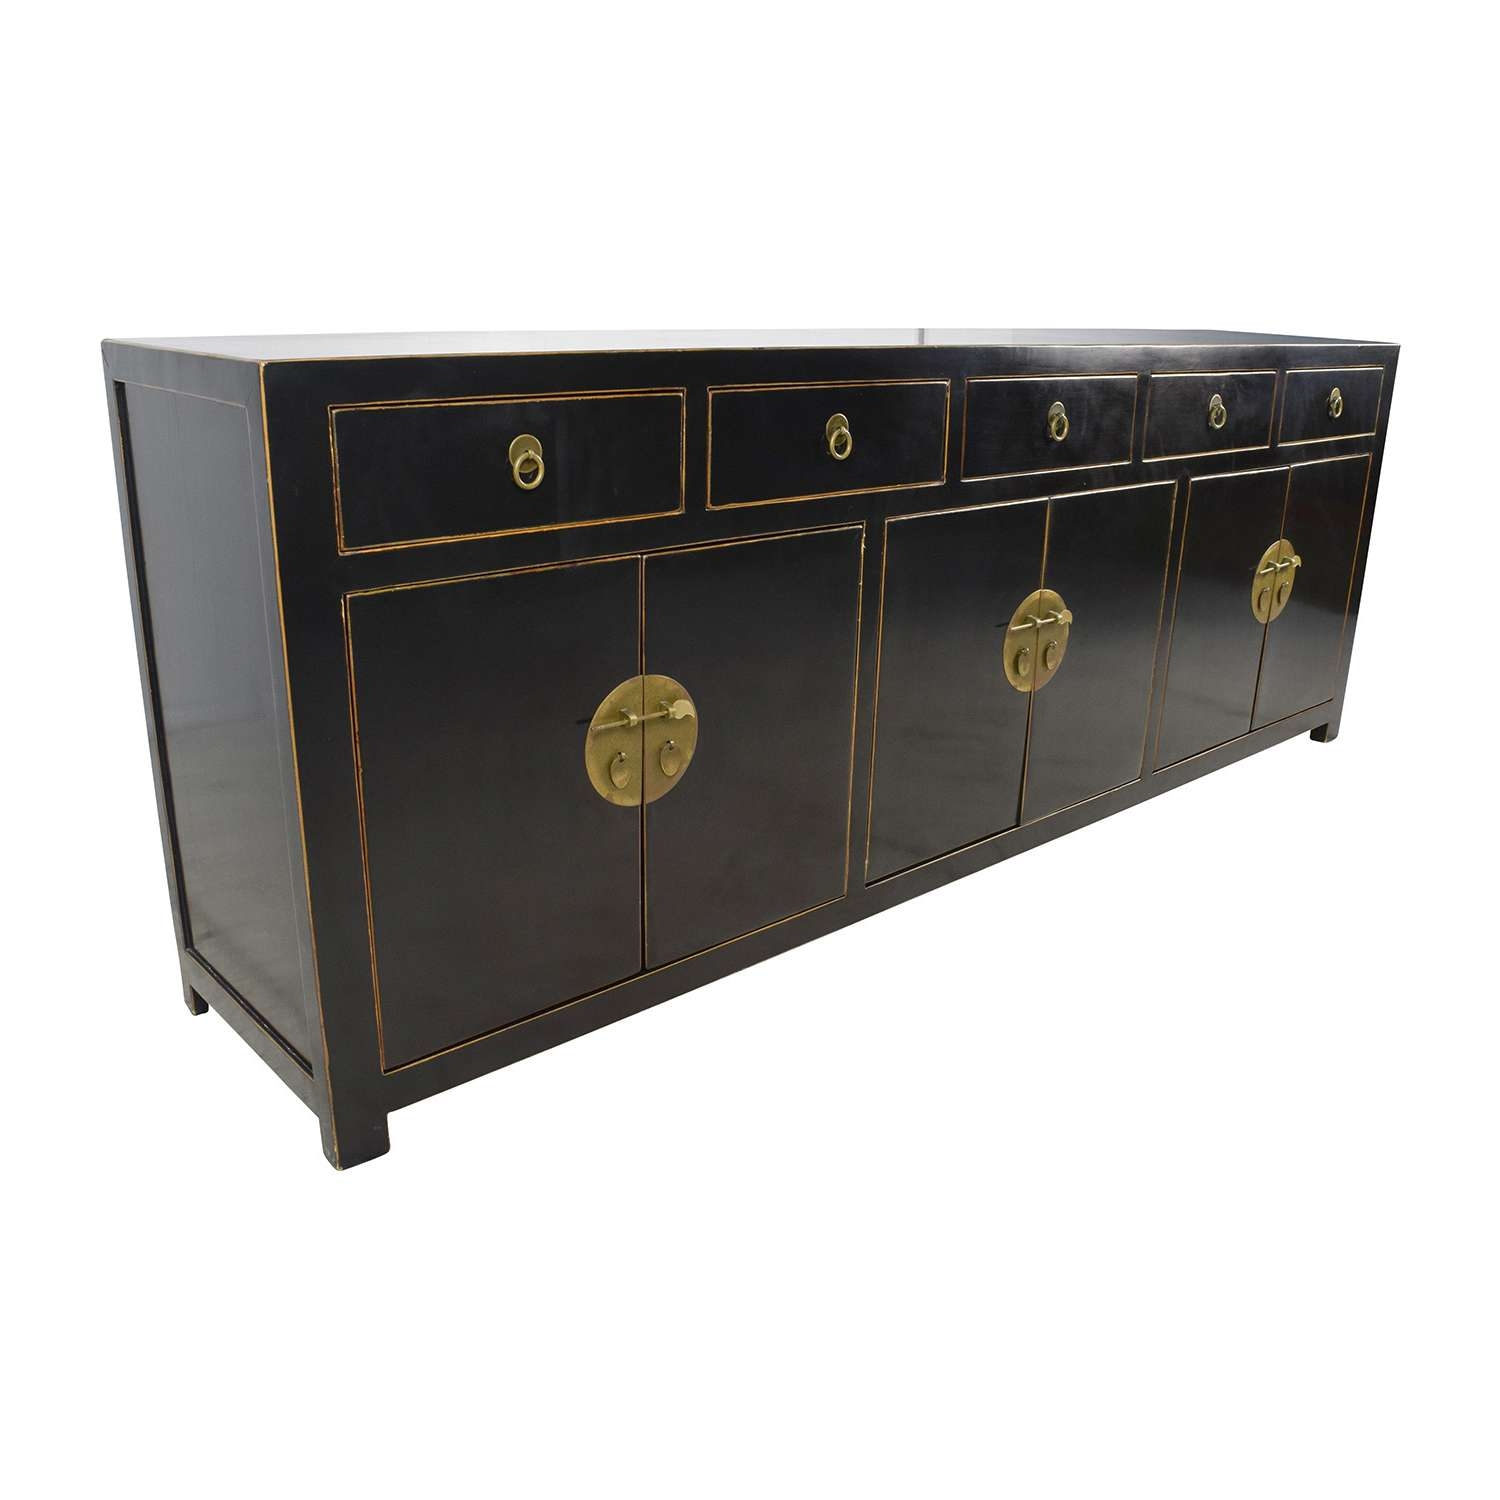 85% Off – Custom Made Black Drawer And Cabinet Sideboard / Storage Inside Black Sideboards Cabinets (Gallery 4 of 20)